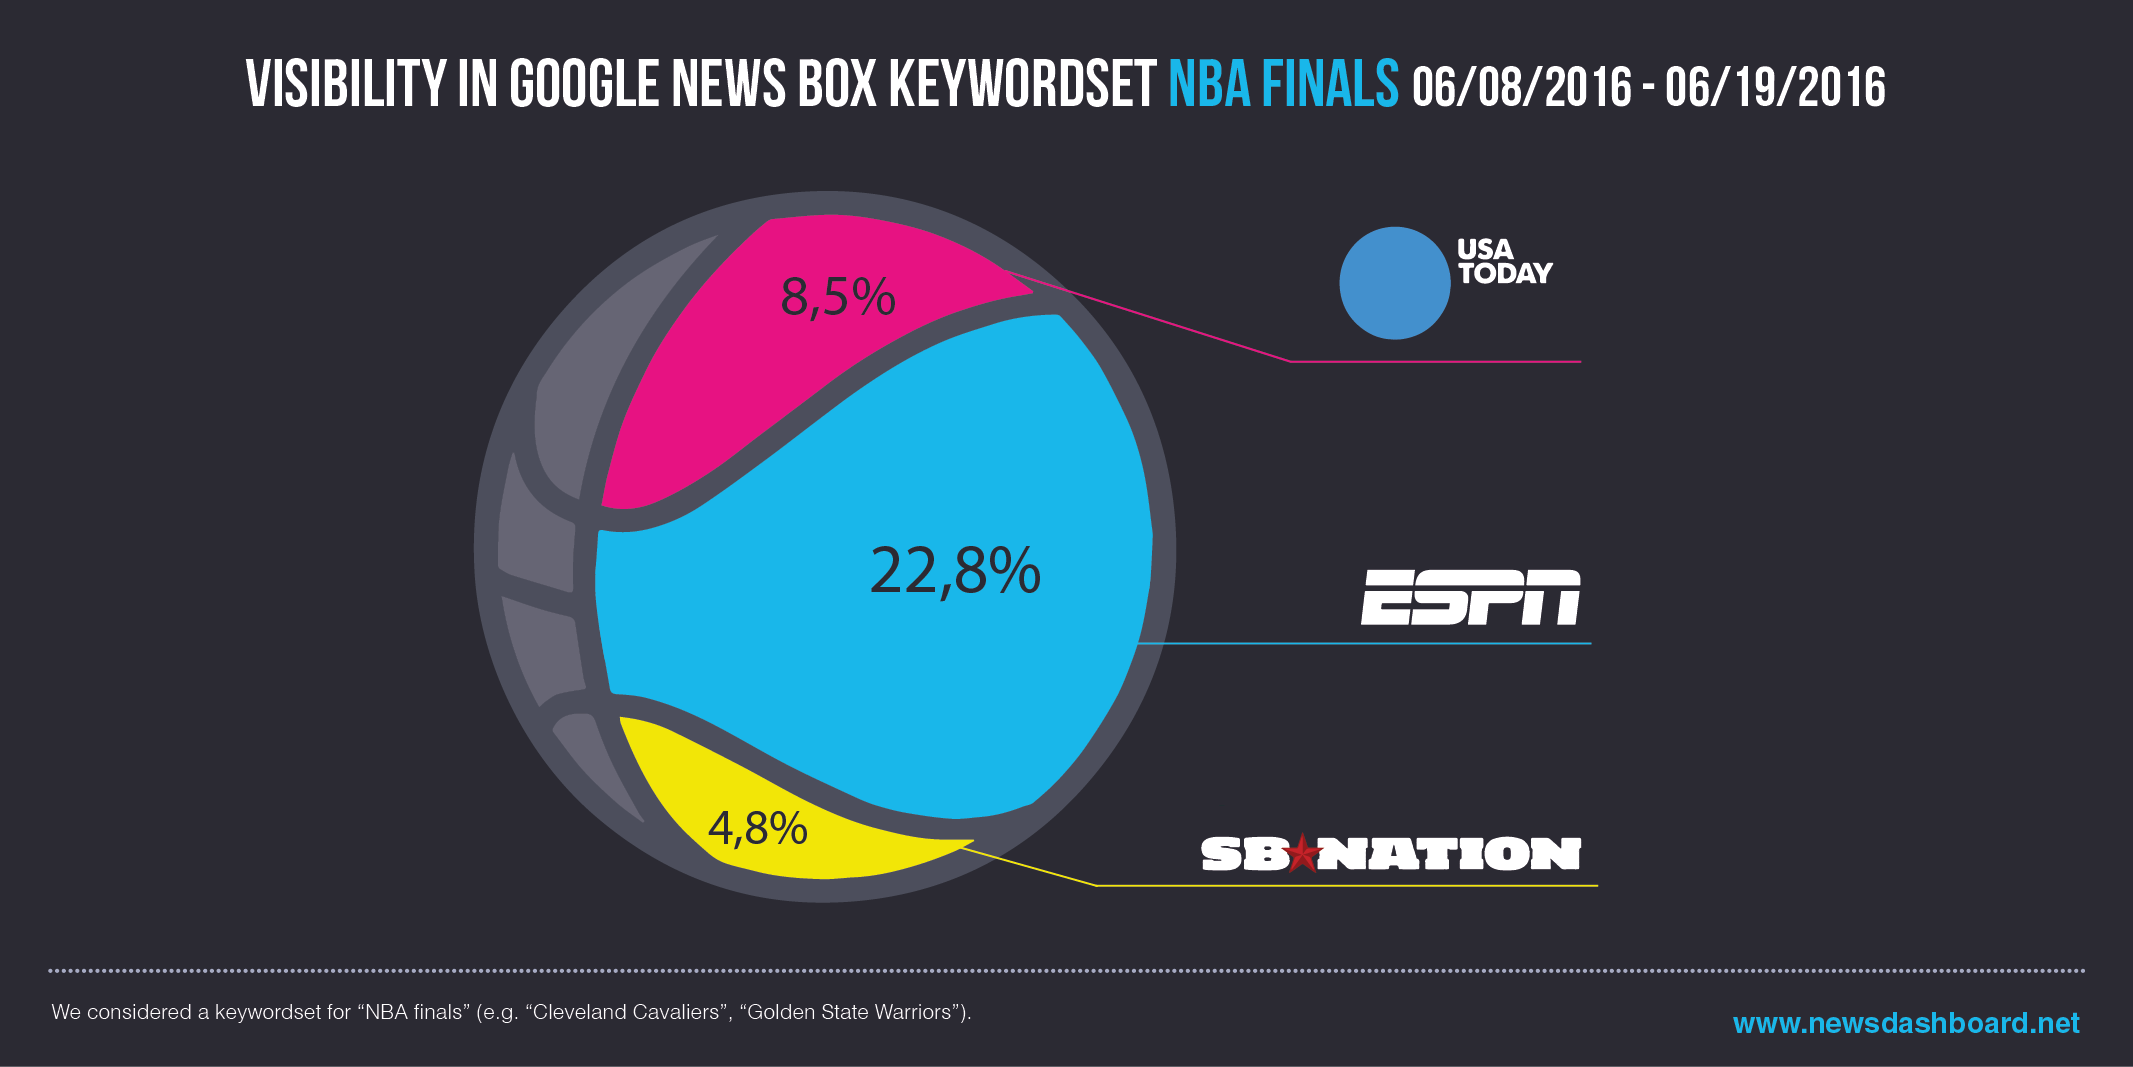 Espn.go.com won the NBA Finals cleary as visibility in the Google News Boxes is concerned. Second is usatoday.com and third sbnation.com